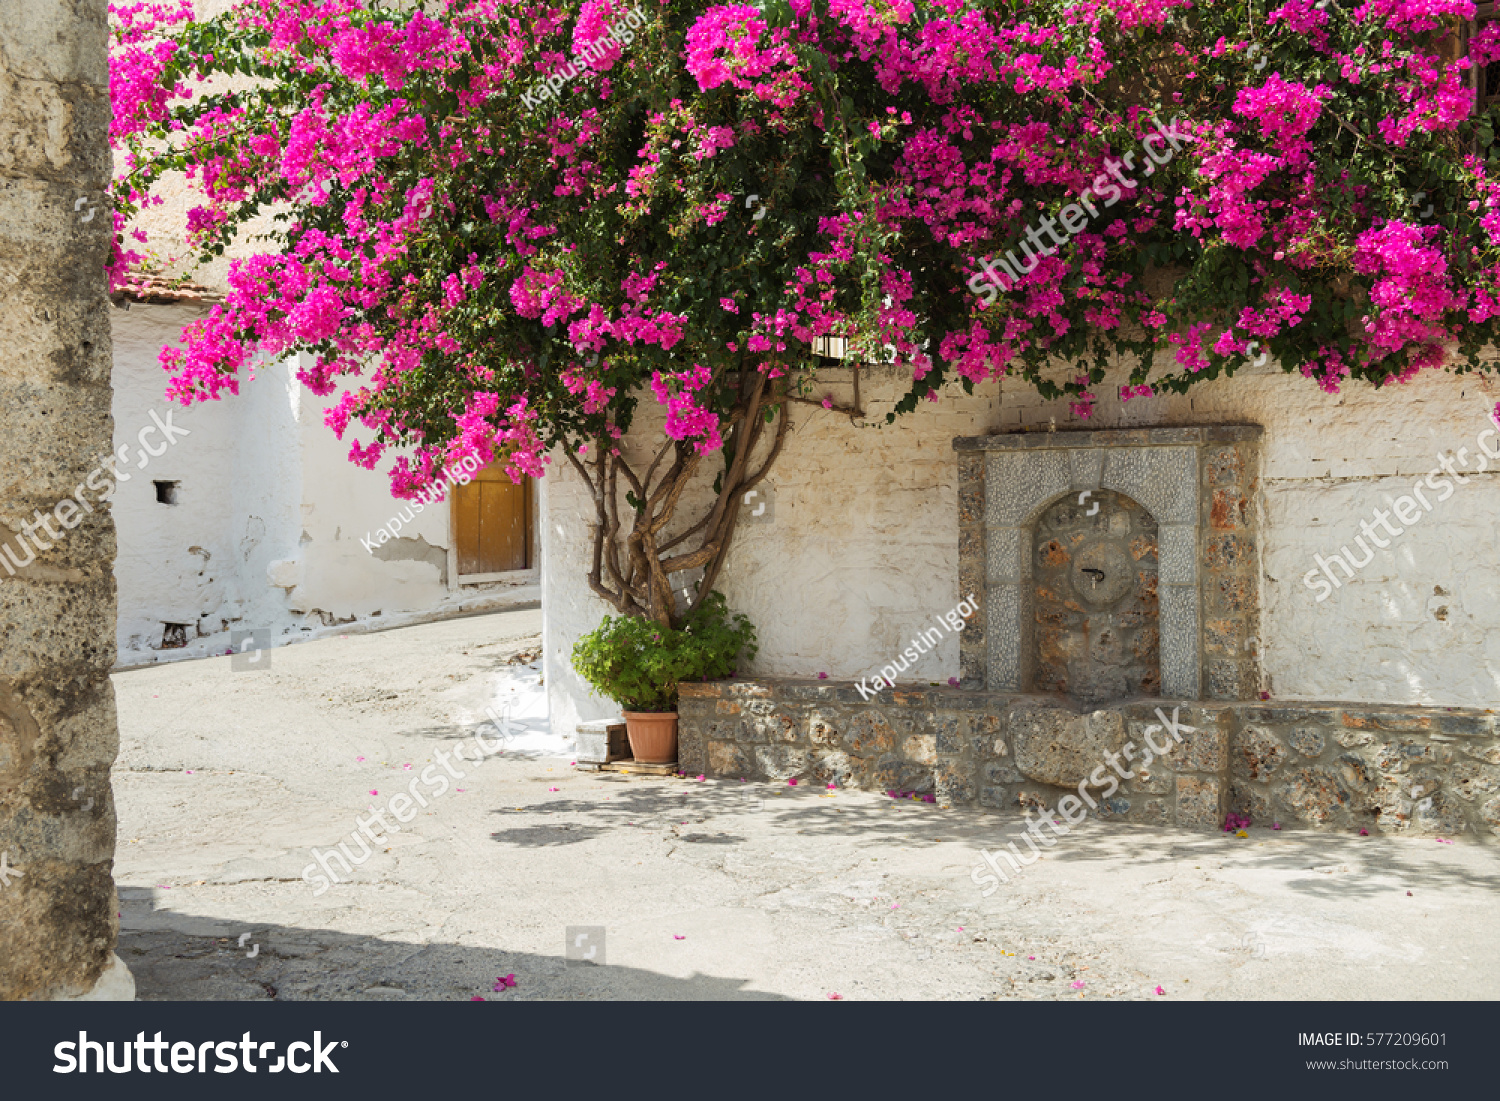 Pink Flowers On Tree Village Greece Stock Photo Edit Now 577209601